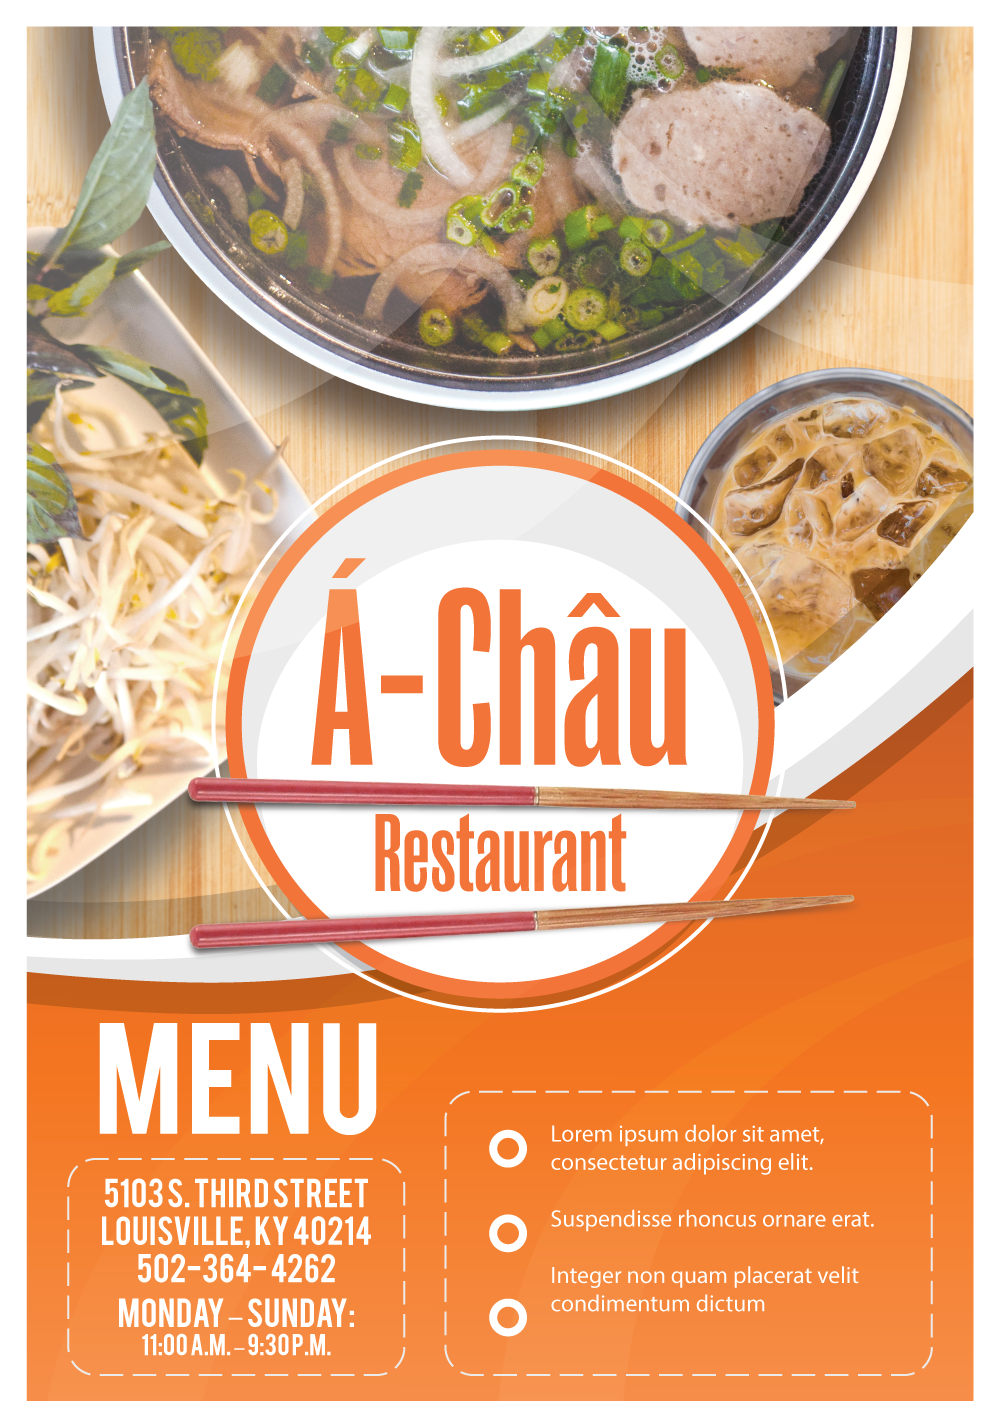 A Chau Menu Orange